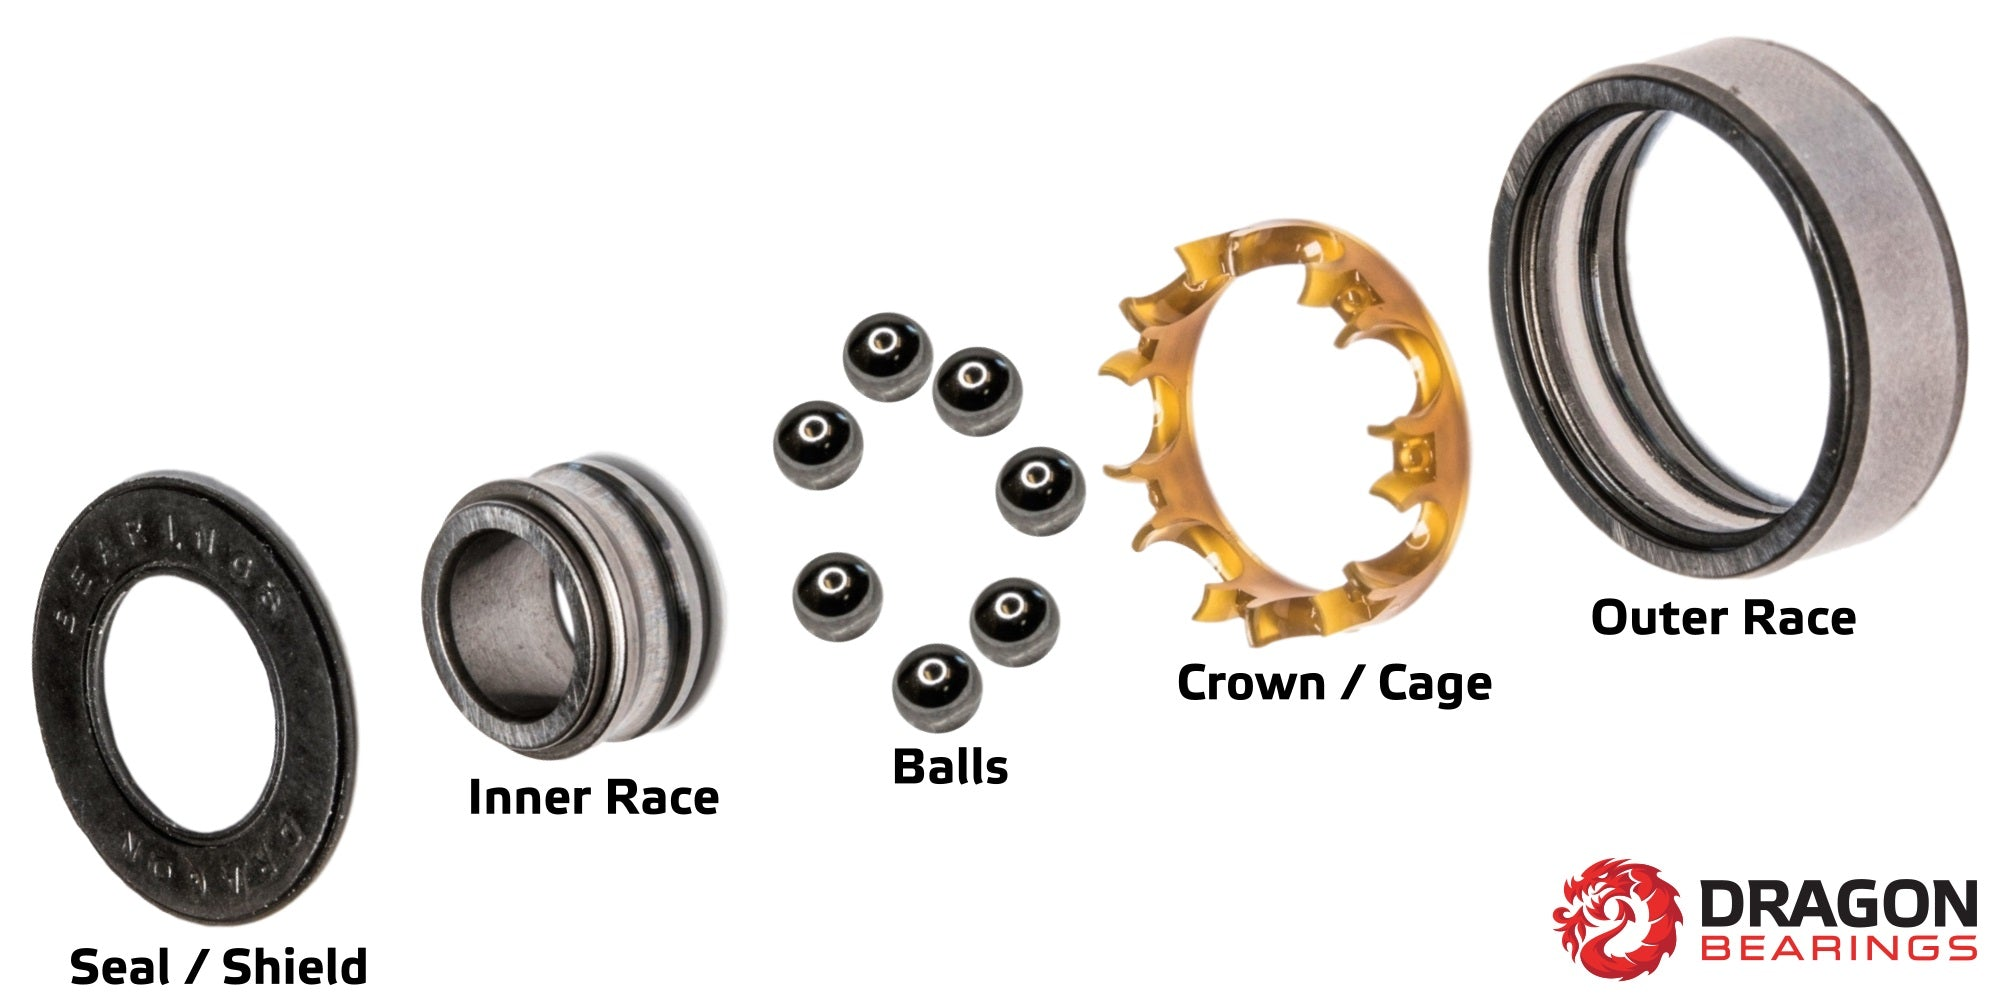 Fireball Dragon Skateboard Bearings Exploded View